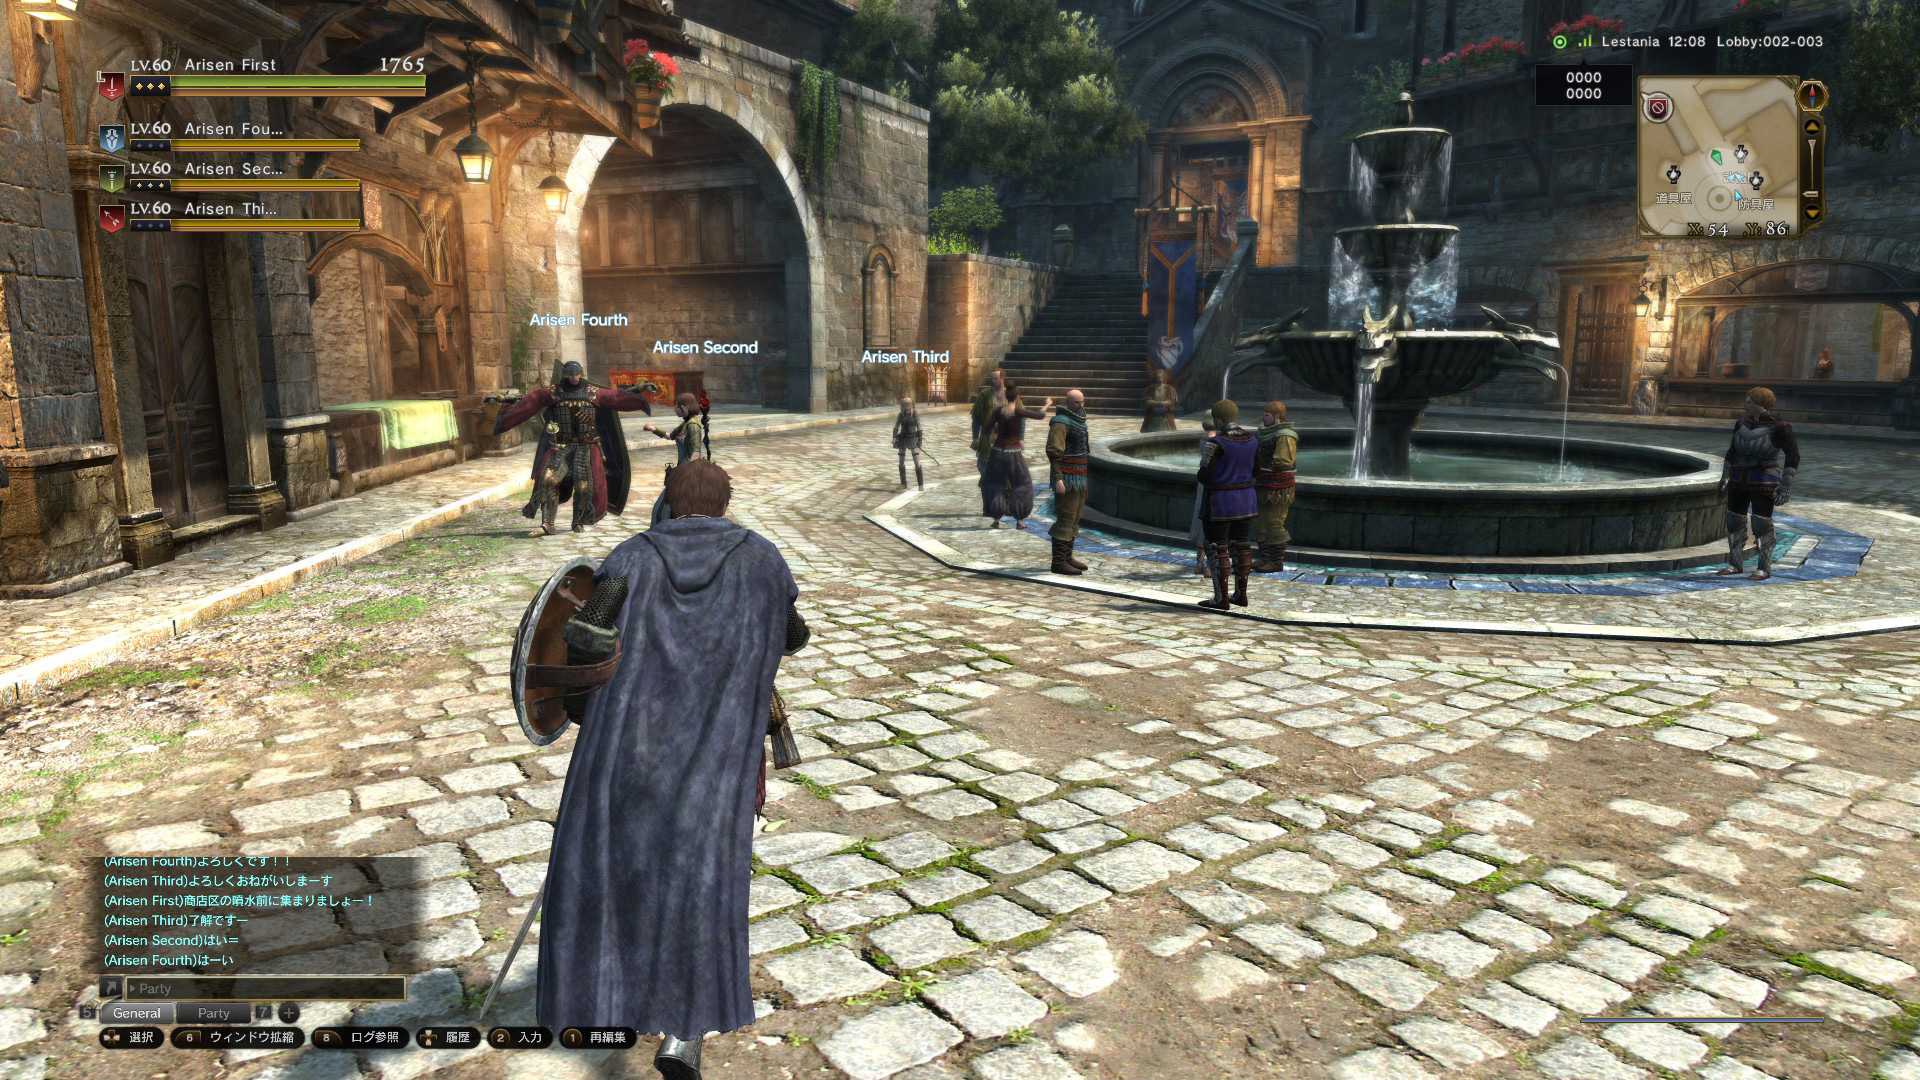 Dragons-Dogma-Online-Town-Lobby-Screenshot-3